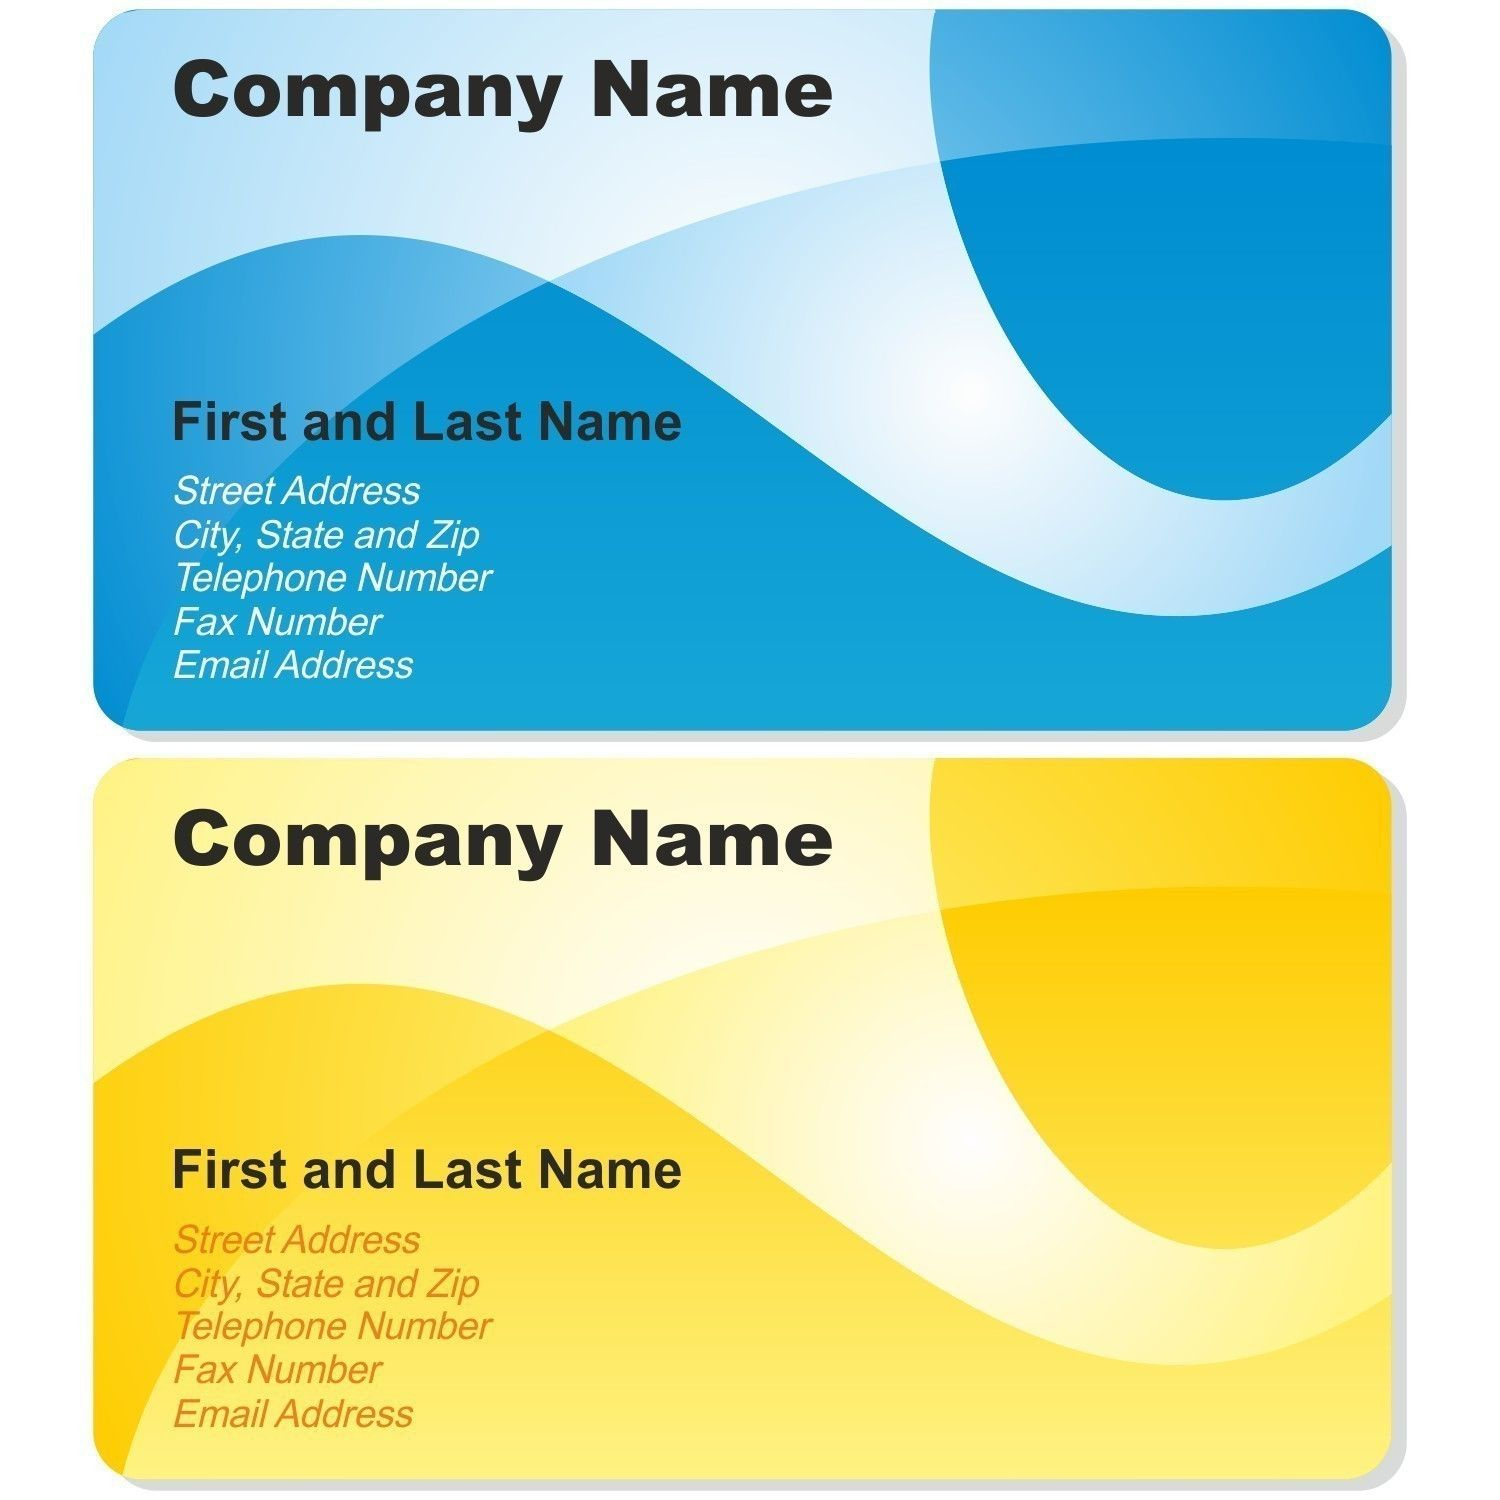 Make Your Custom Blank Business Card Template Coreldraw For Free Graphic Design Business Card Visiting Card Design Simple Business Cards